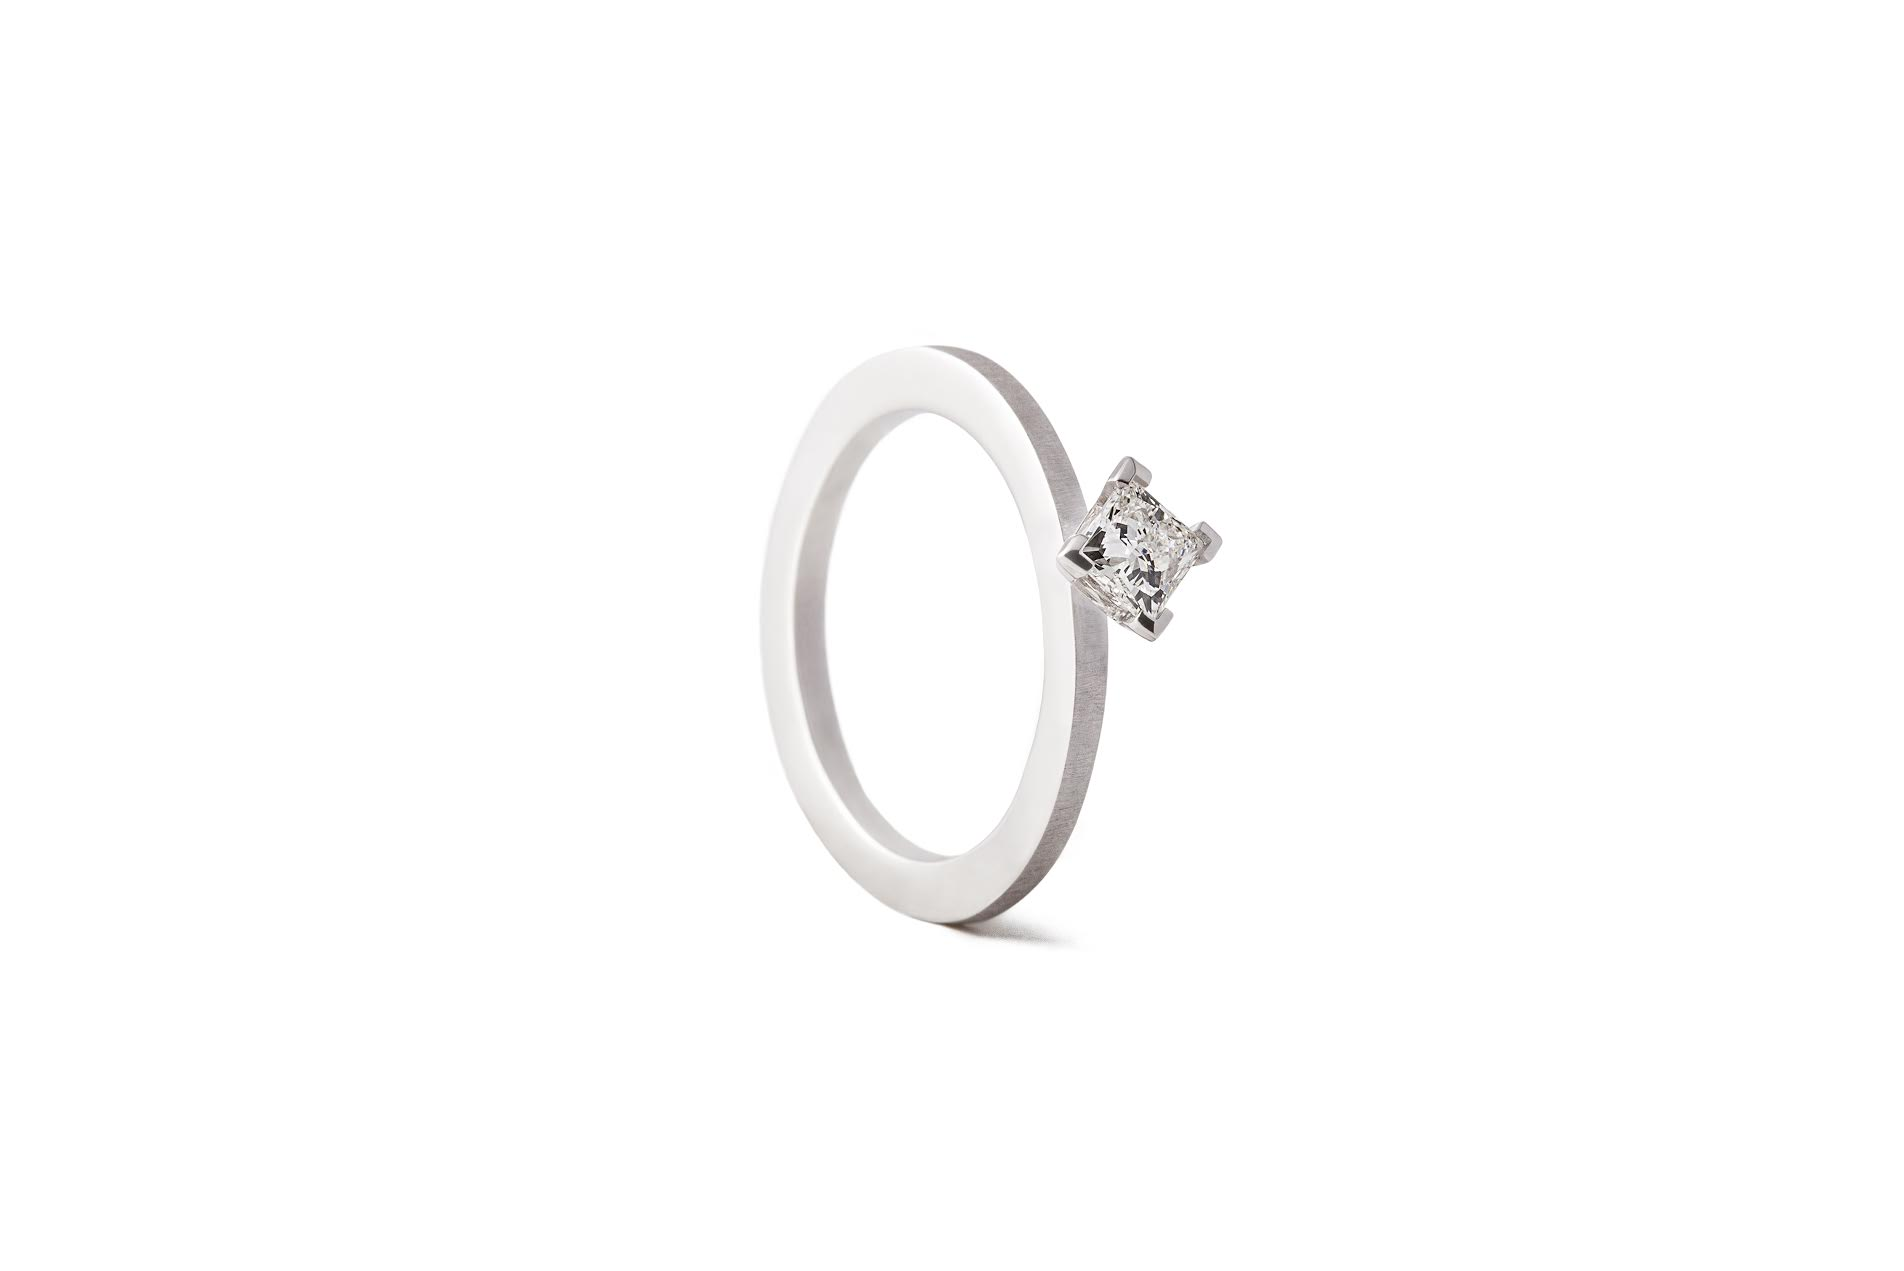 CREST-M-RING-18K-WHITE-GOLD-PRINCESS-DIAMOND-0.40CT